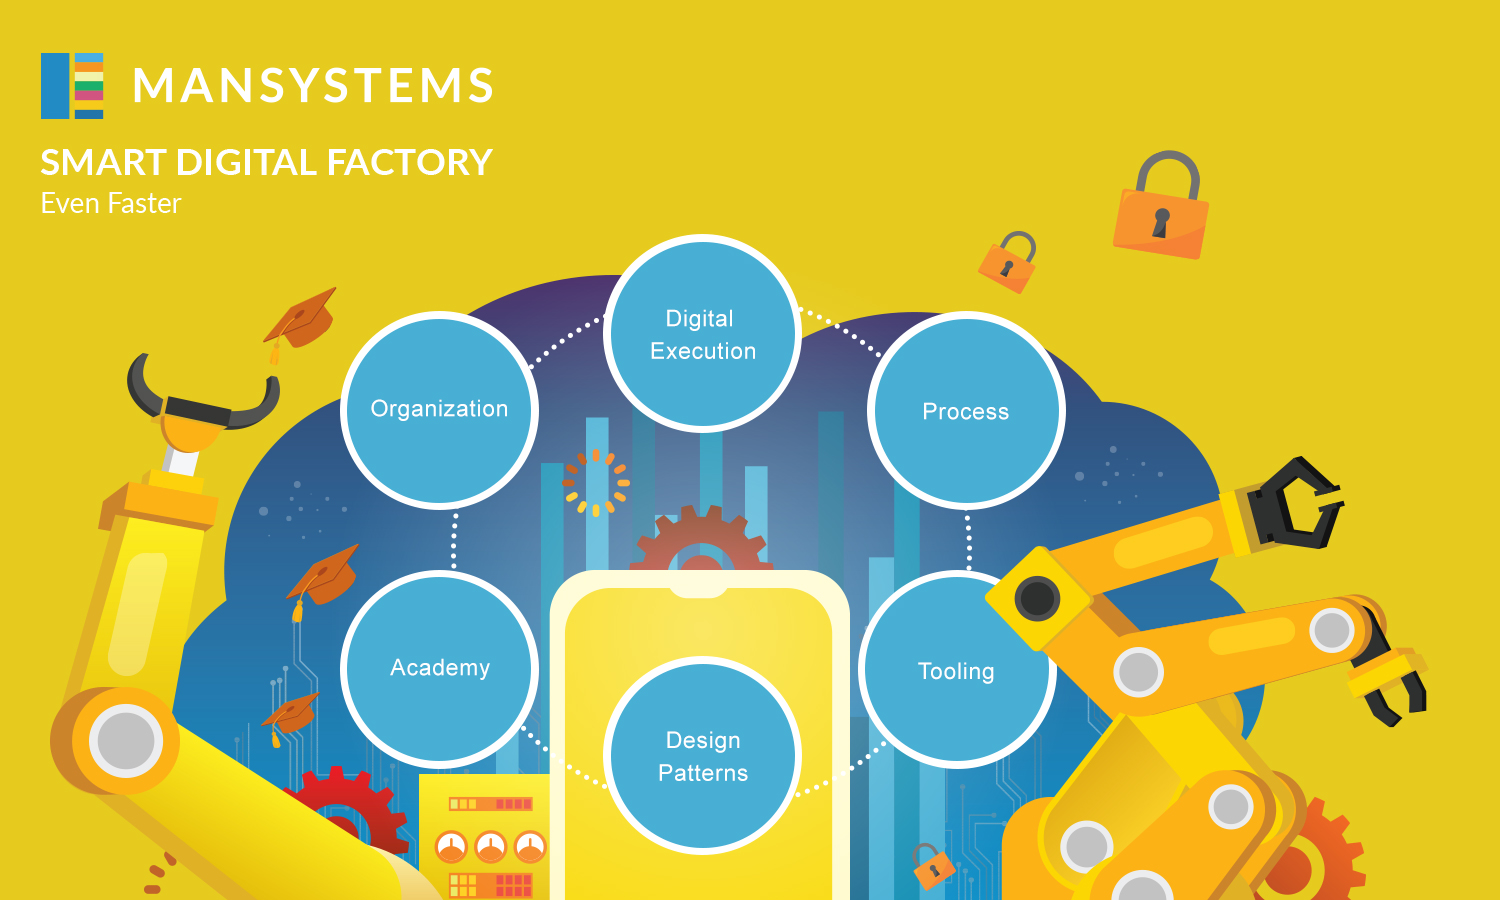 SMART_Digital_Factory_Even_Faster_graphic_Mansystems